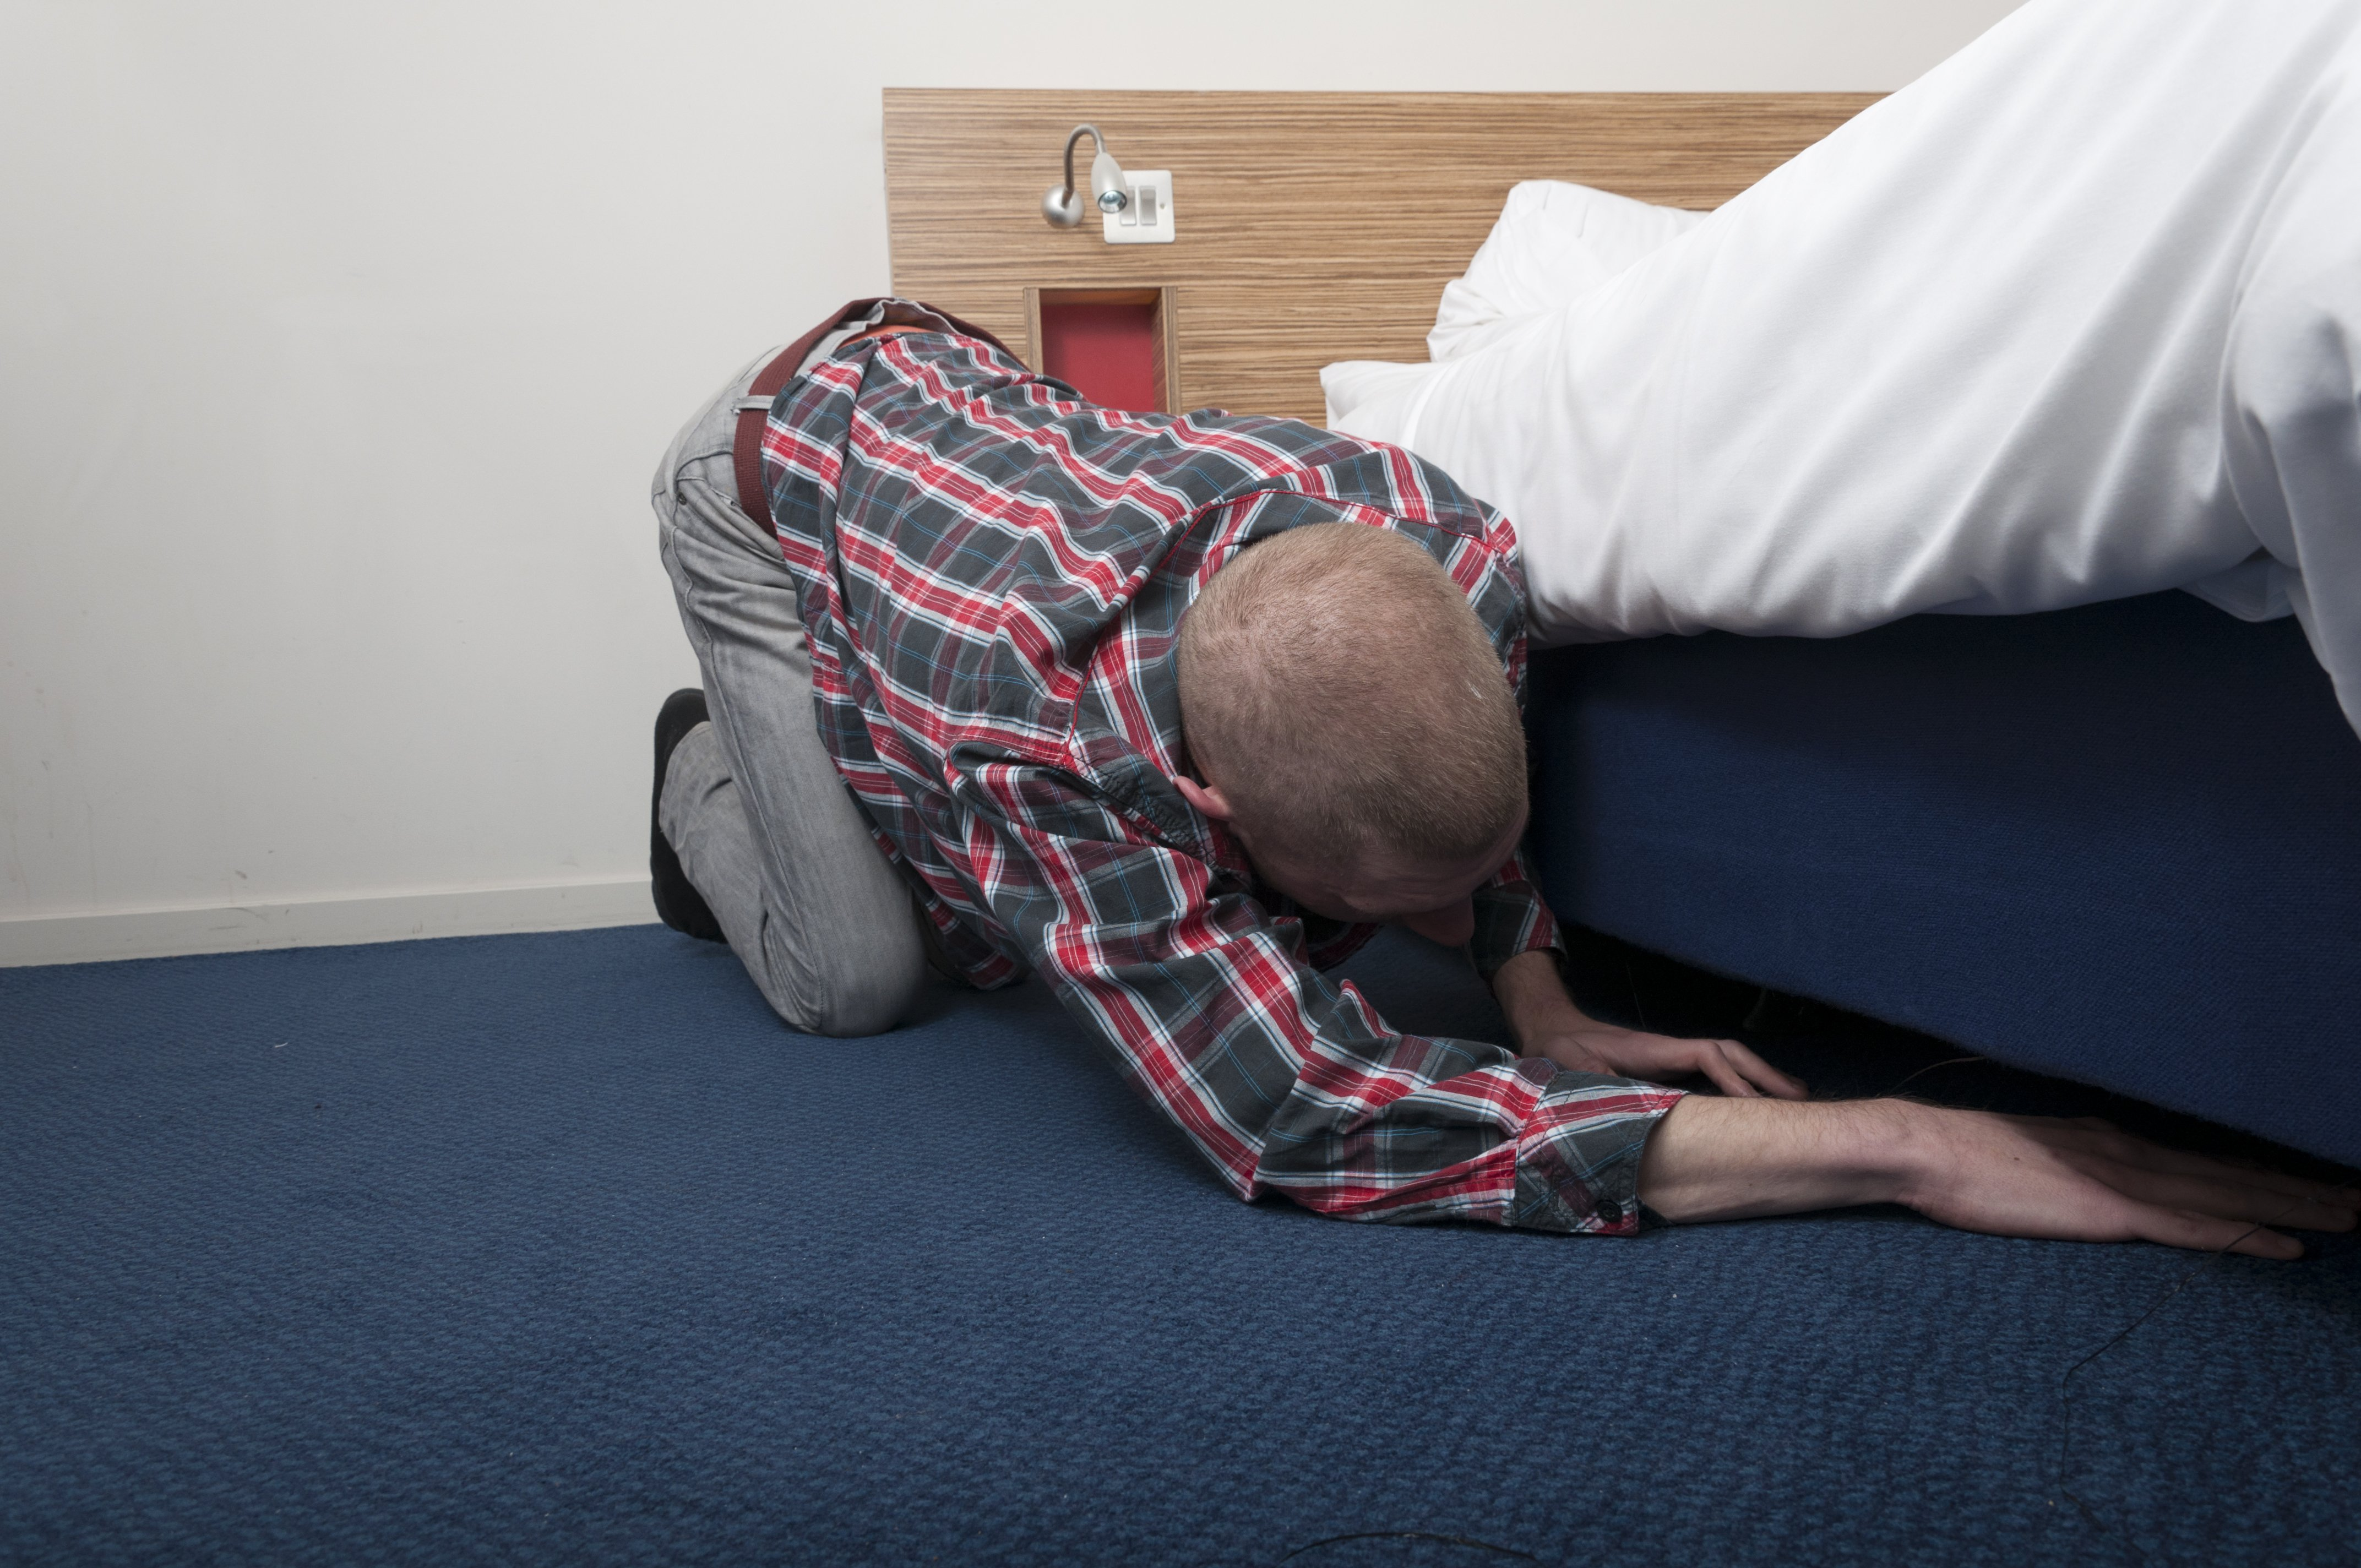 Man looking under the bed. Image credit: Shutterstock